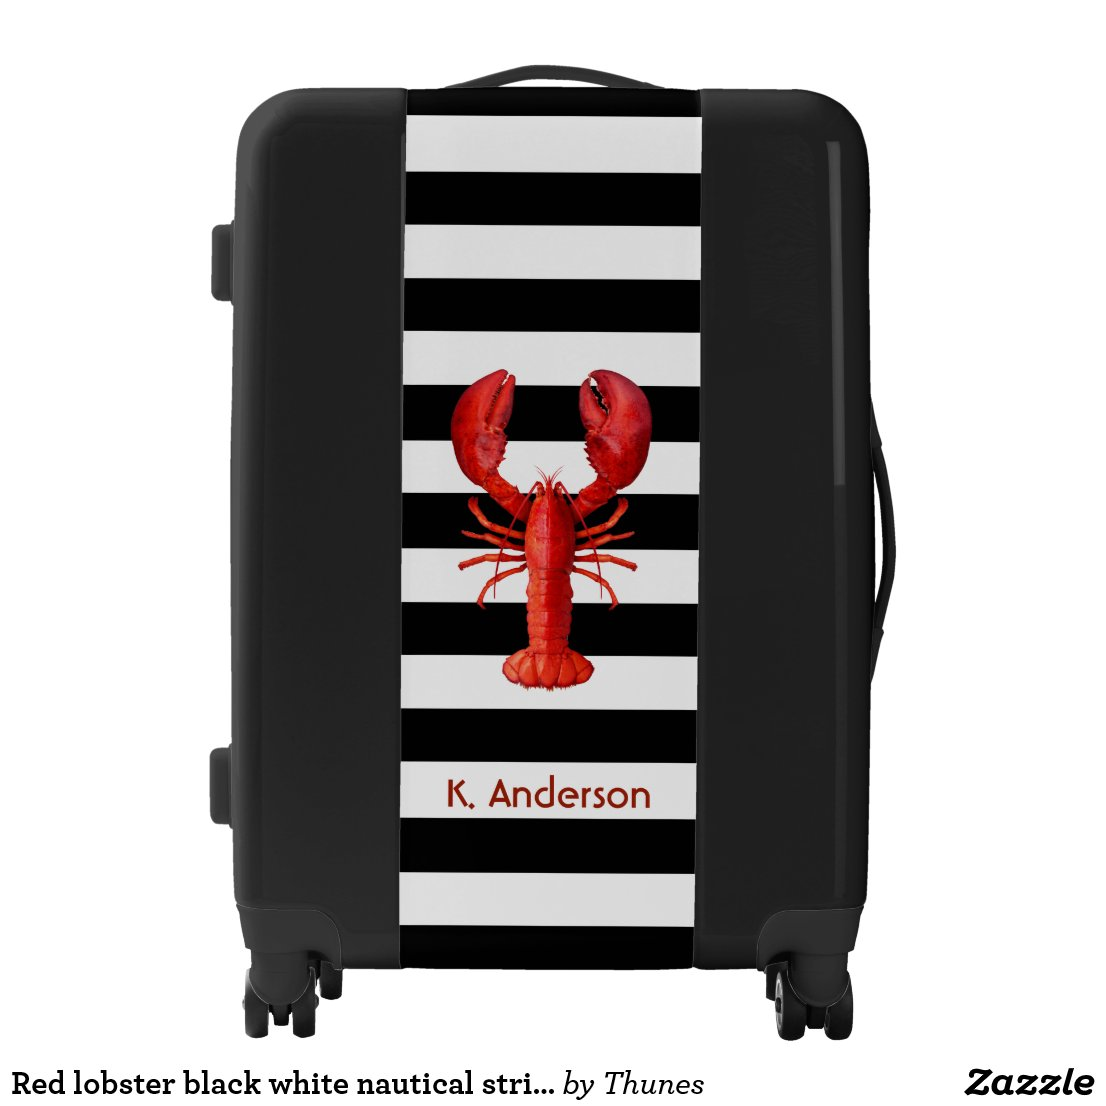 Red lobster black white nautical stripes suitcase